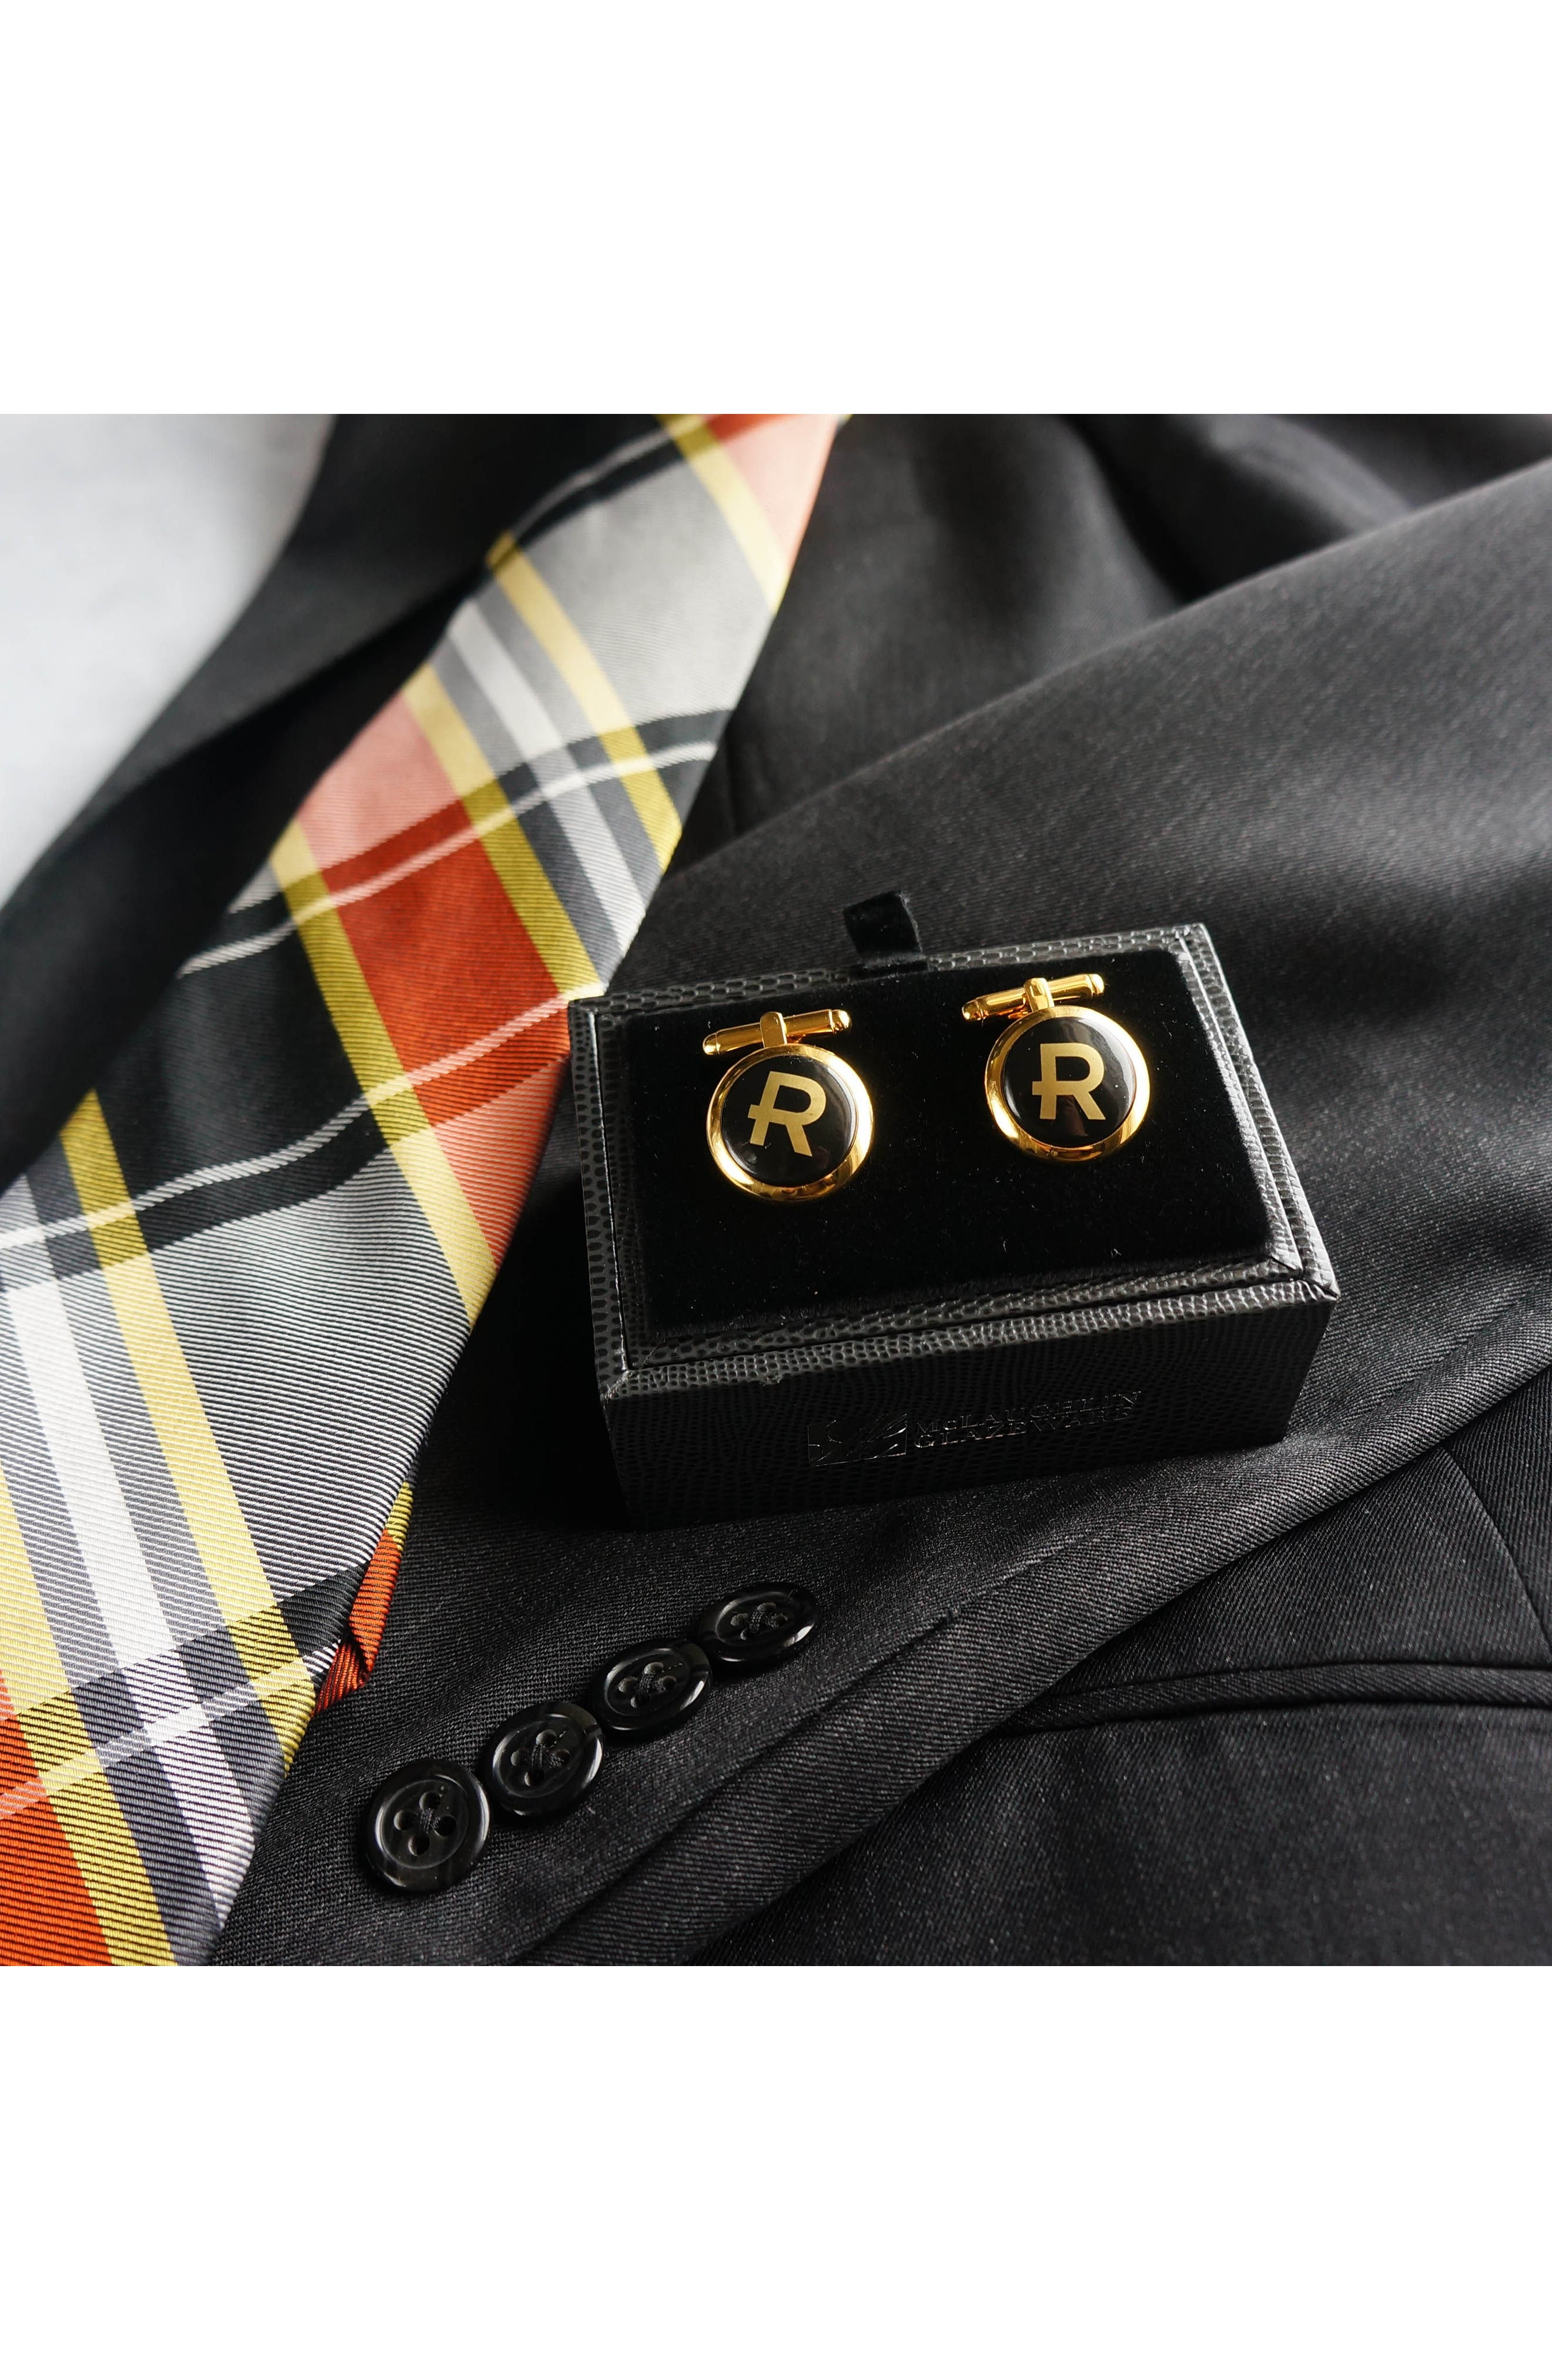 Brooklyn Initial Cuff Links,                             Alternate thumbnail 2, color,                             710